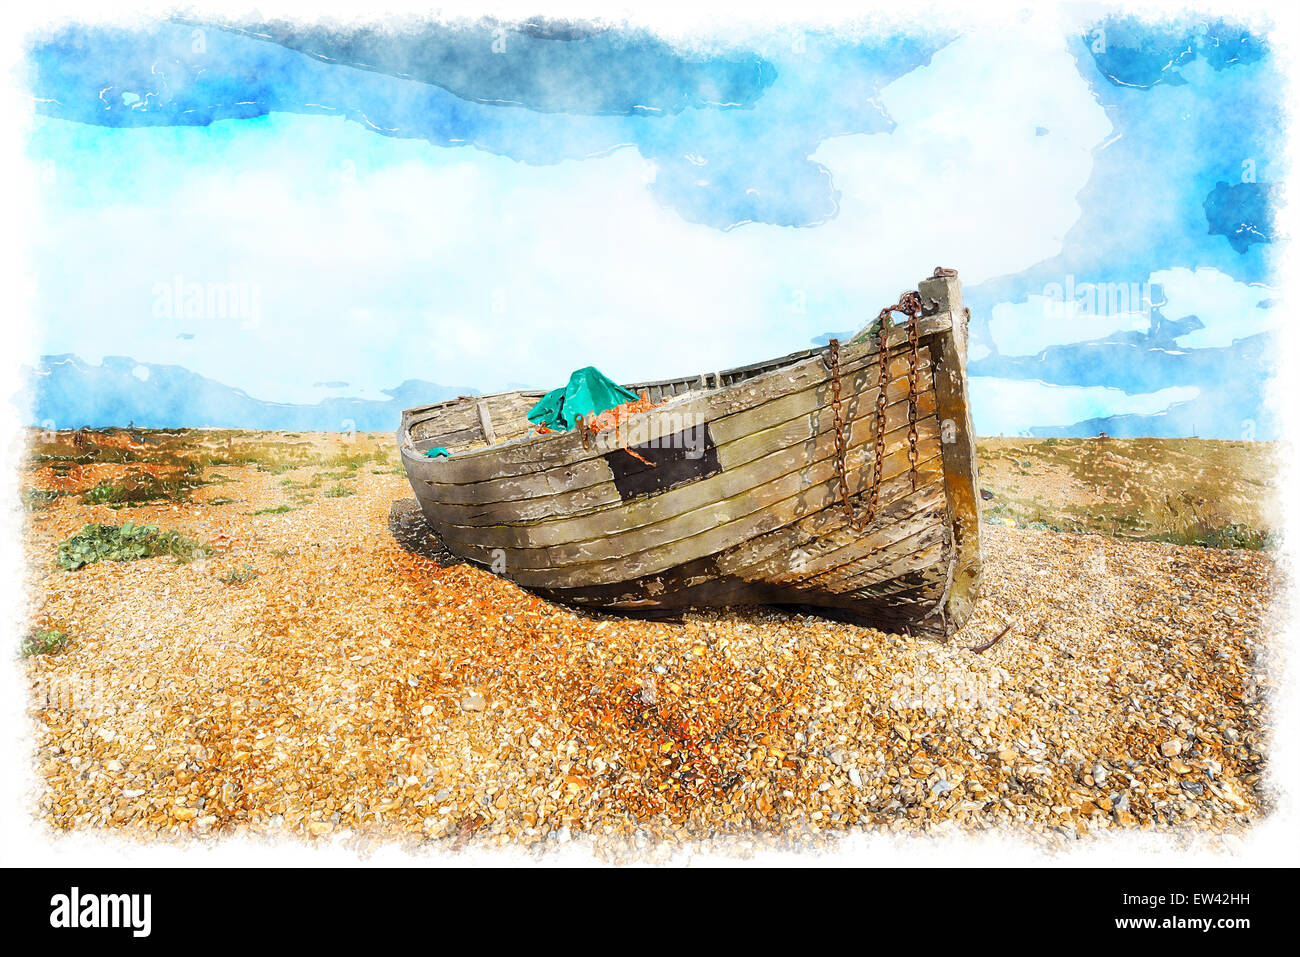 Watercolour painting of an old weathered wooden fishing boat on a pebble beach under a blue sky - Stock Image